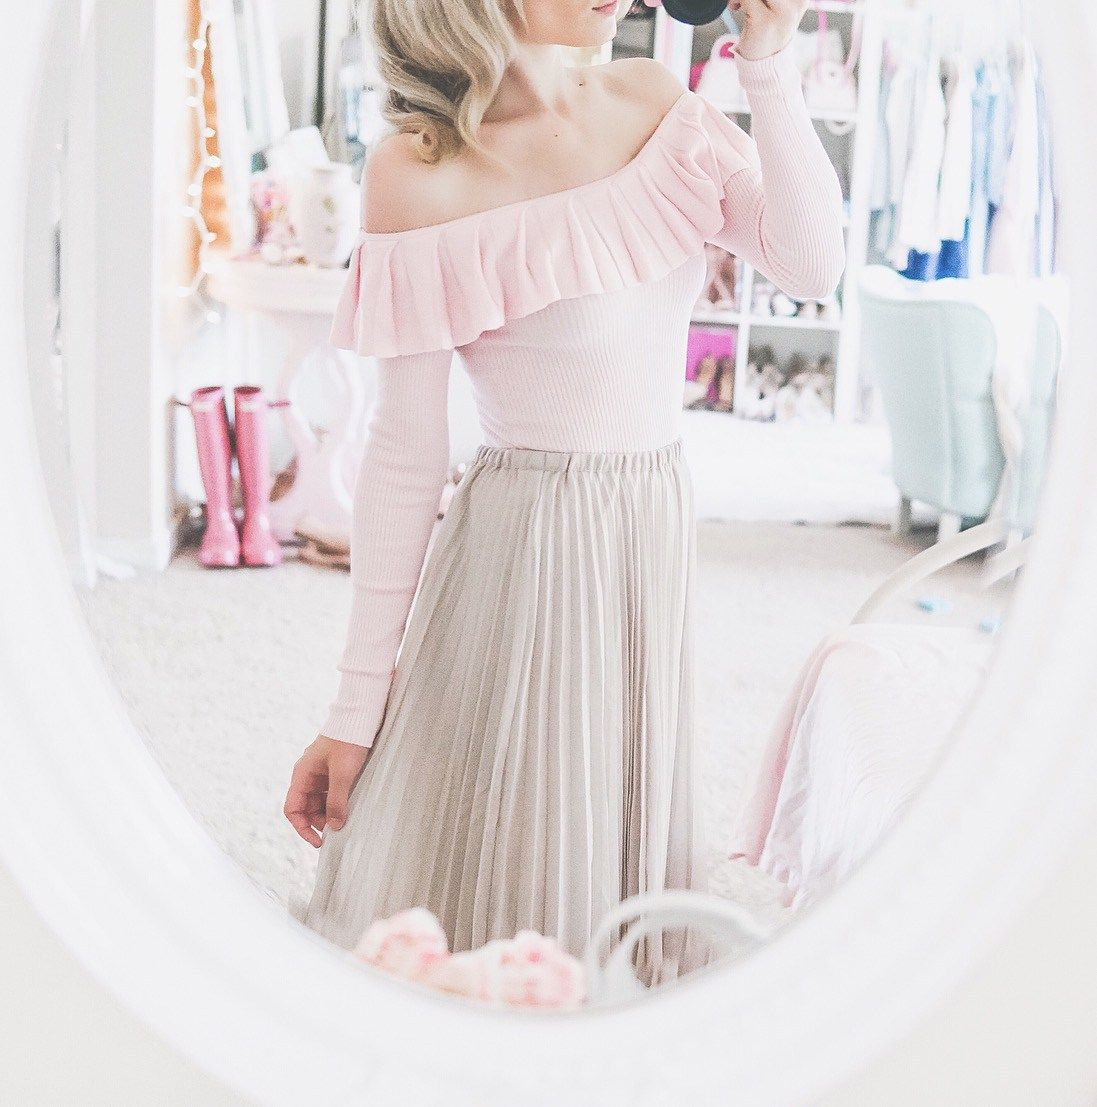 Feminine Style & Current Trends with LC Lauren Conrad is part of Clothes Style Romantic - Feminine Style & Current Trends with LC Lauren Conrad I have loved the LC Lauren Conrad clothing line for years!! There's something about her and everything she does that speaks to my sou…